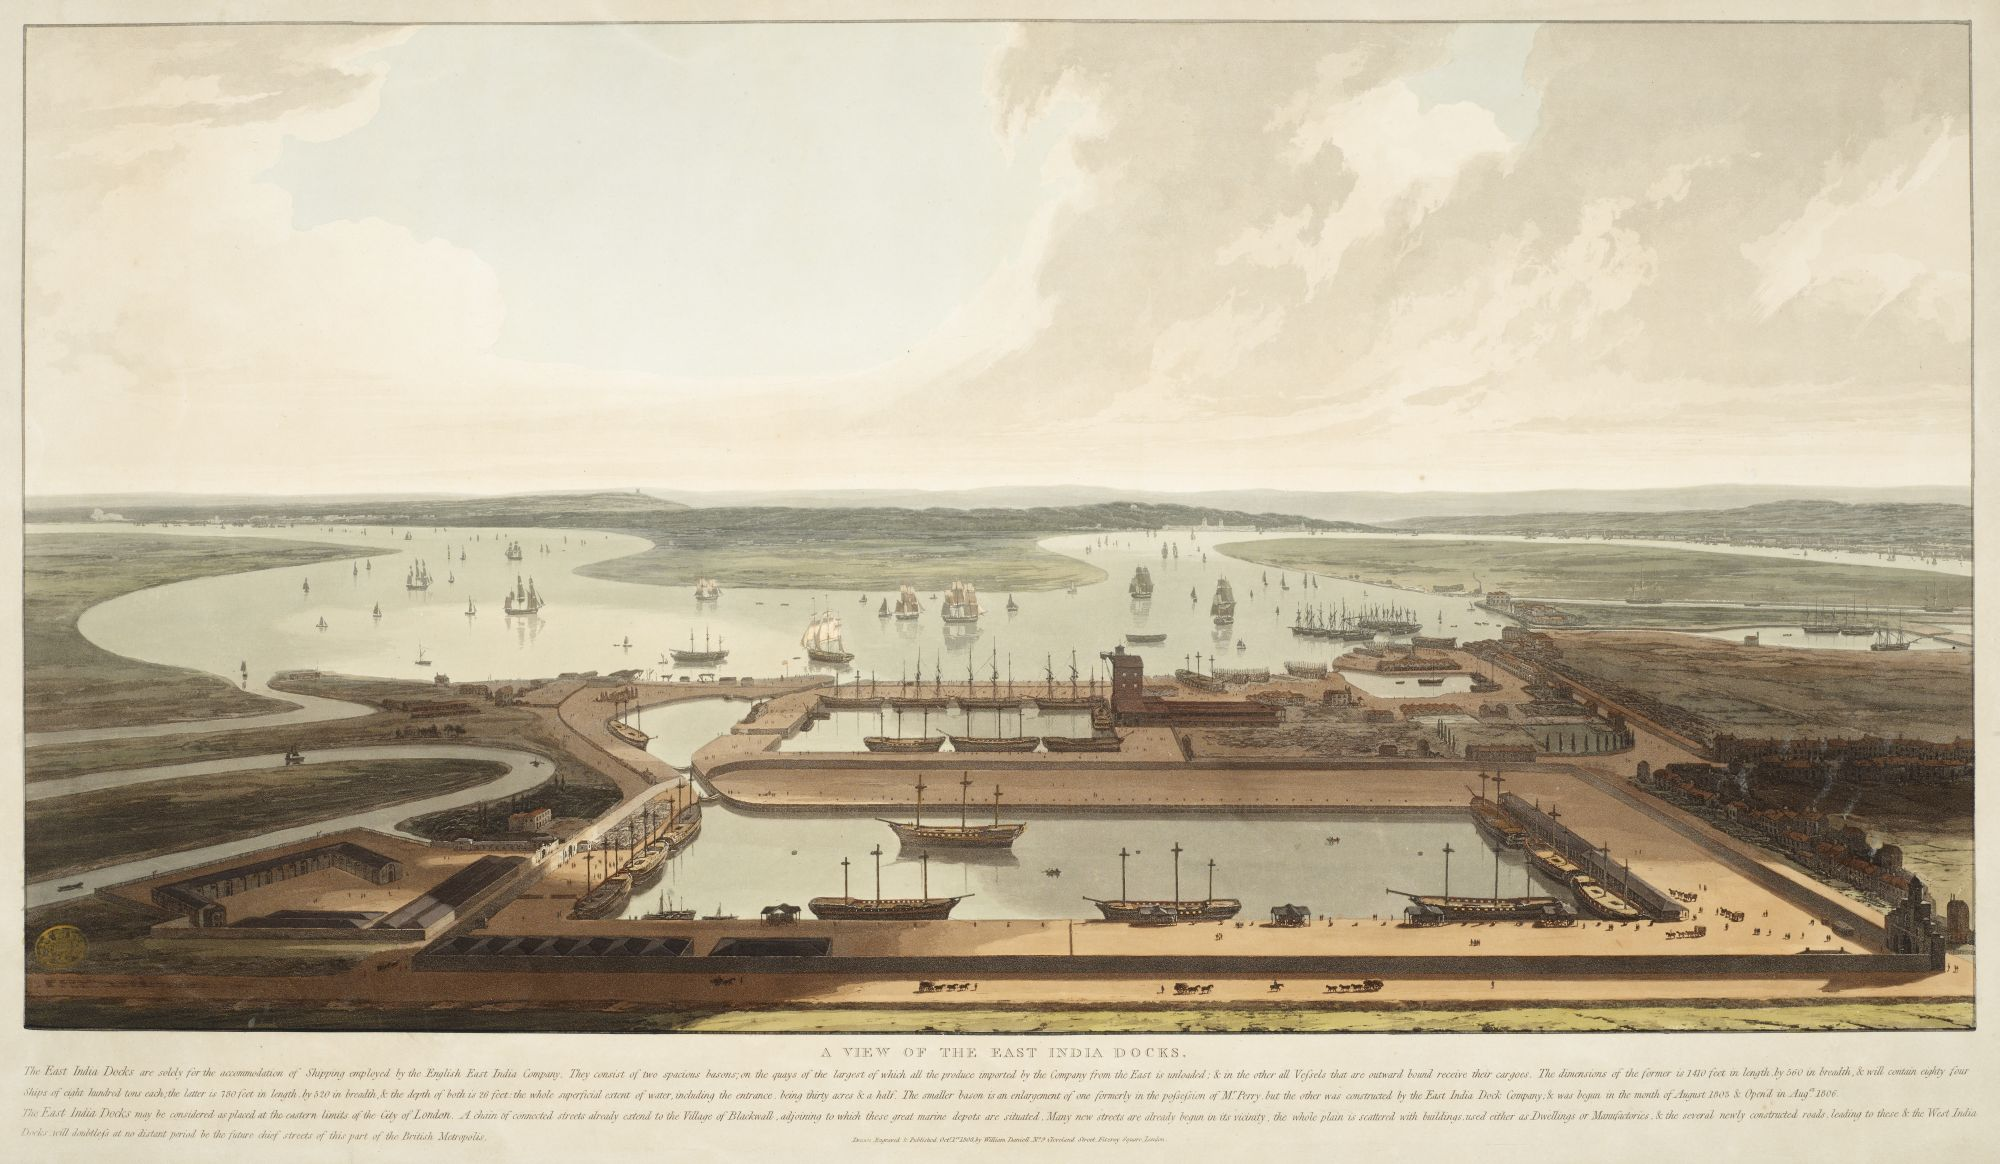 William Daniell, A View of the East India Docks, published by William Daniell, London, 1808, aquatint with hand-colouring, plate 49.6 x 86 cm, on sheet 59.2 x 93.1 cm, British Library, London, Maps K.Top.21.31.5.c.PORT.11.TAB.